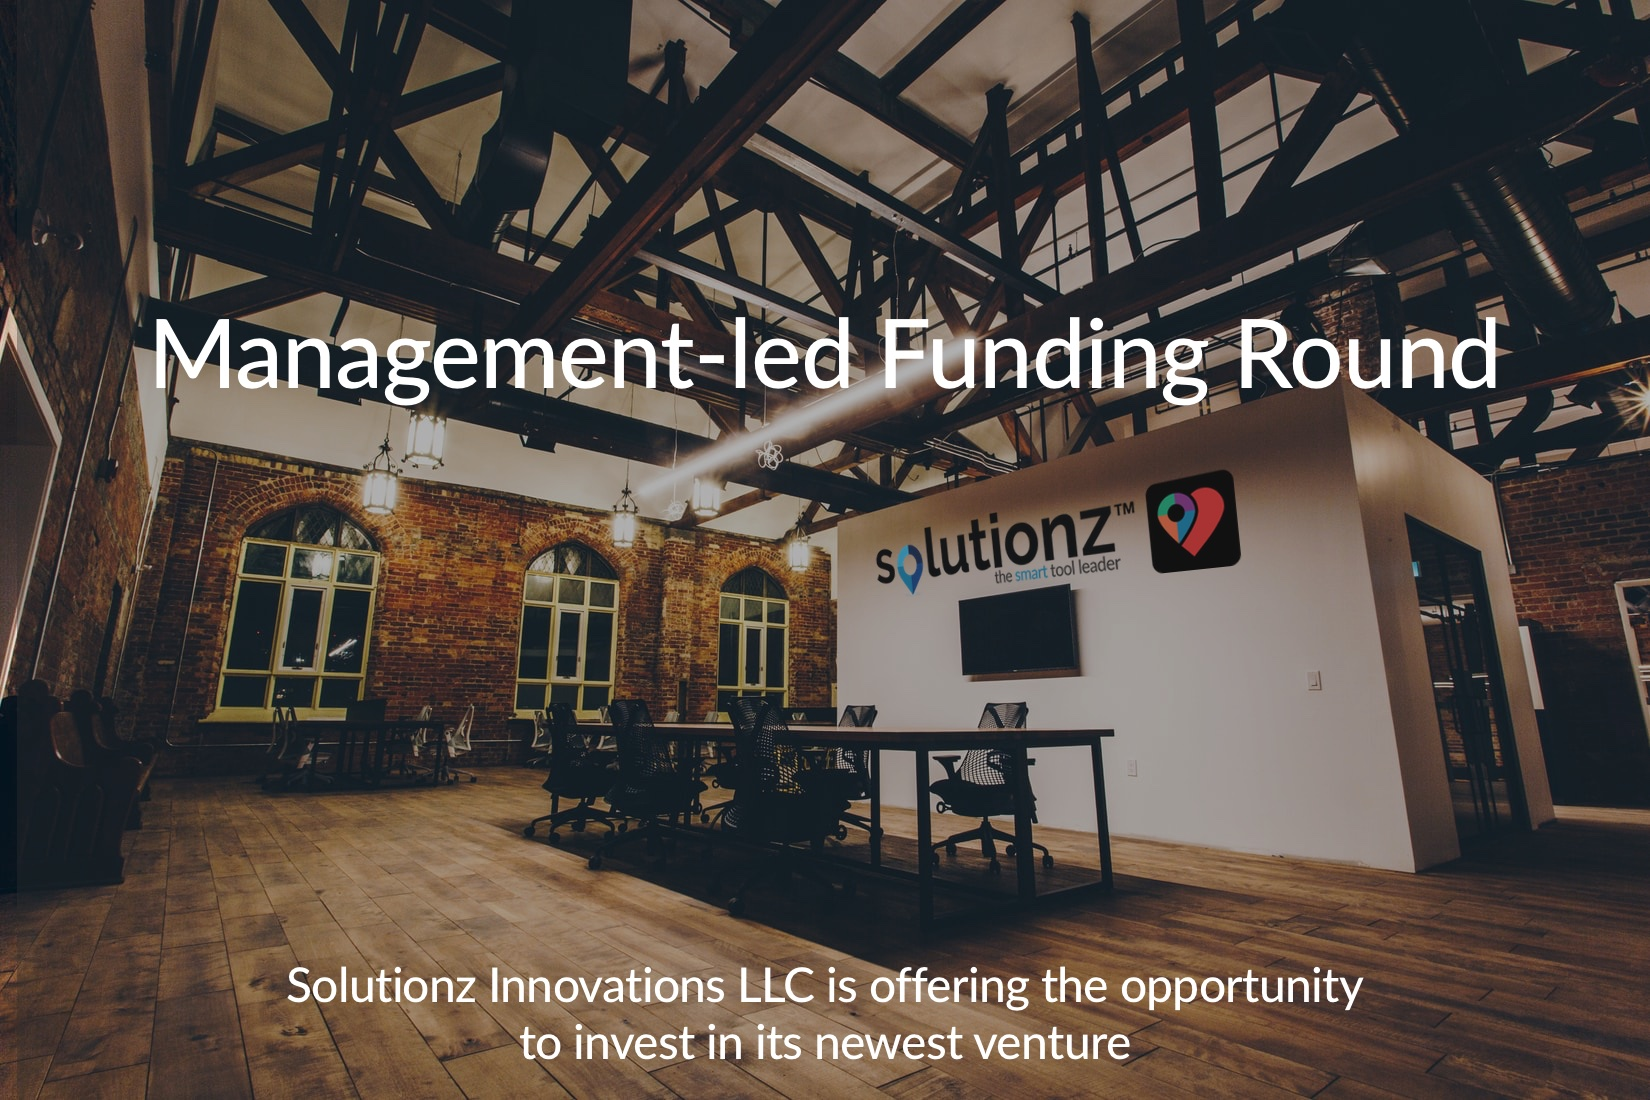 Management-led Funding Round